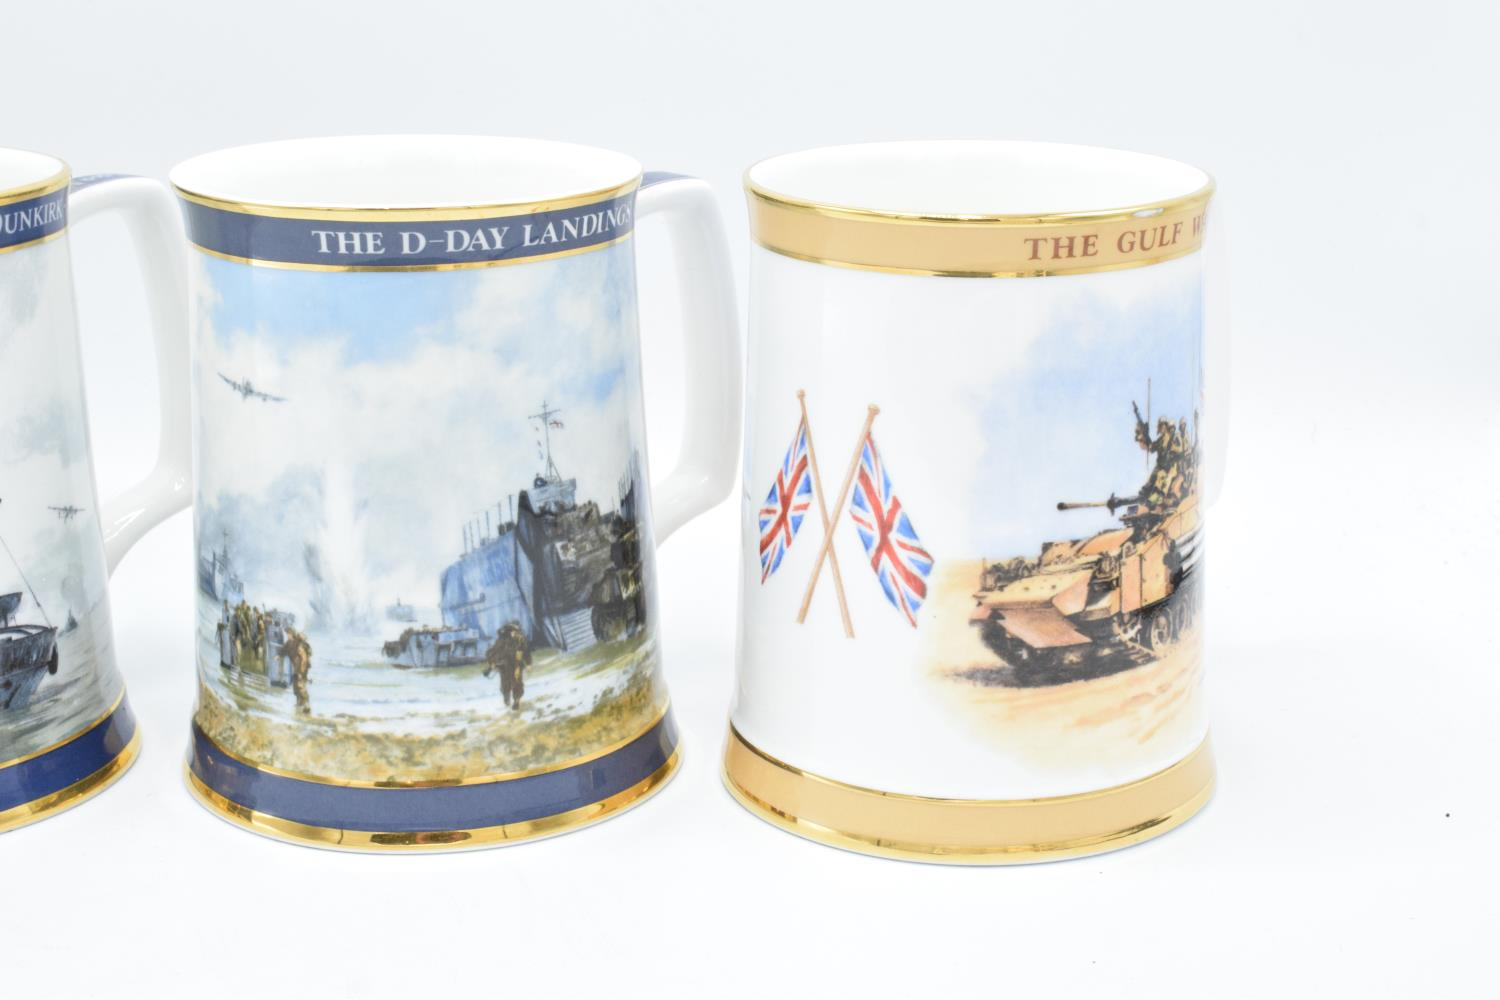 A collection of Royal Doulton tankards to commemorate Gulf War, D-day Landings, Dunkirk and the - Image 3 of 3